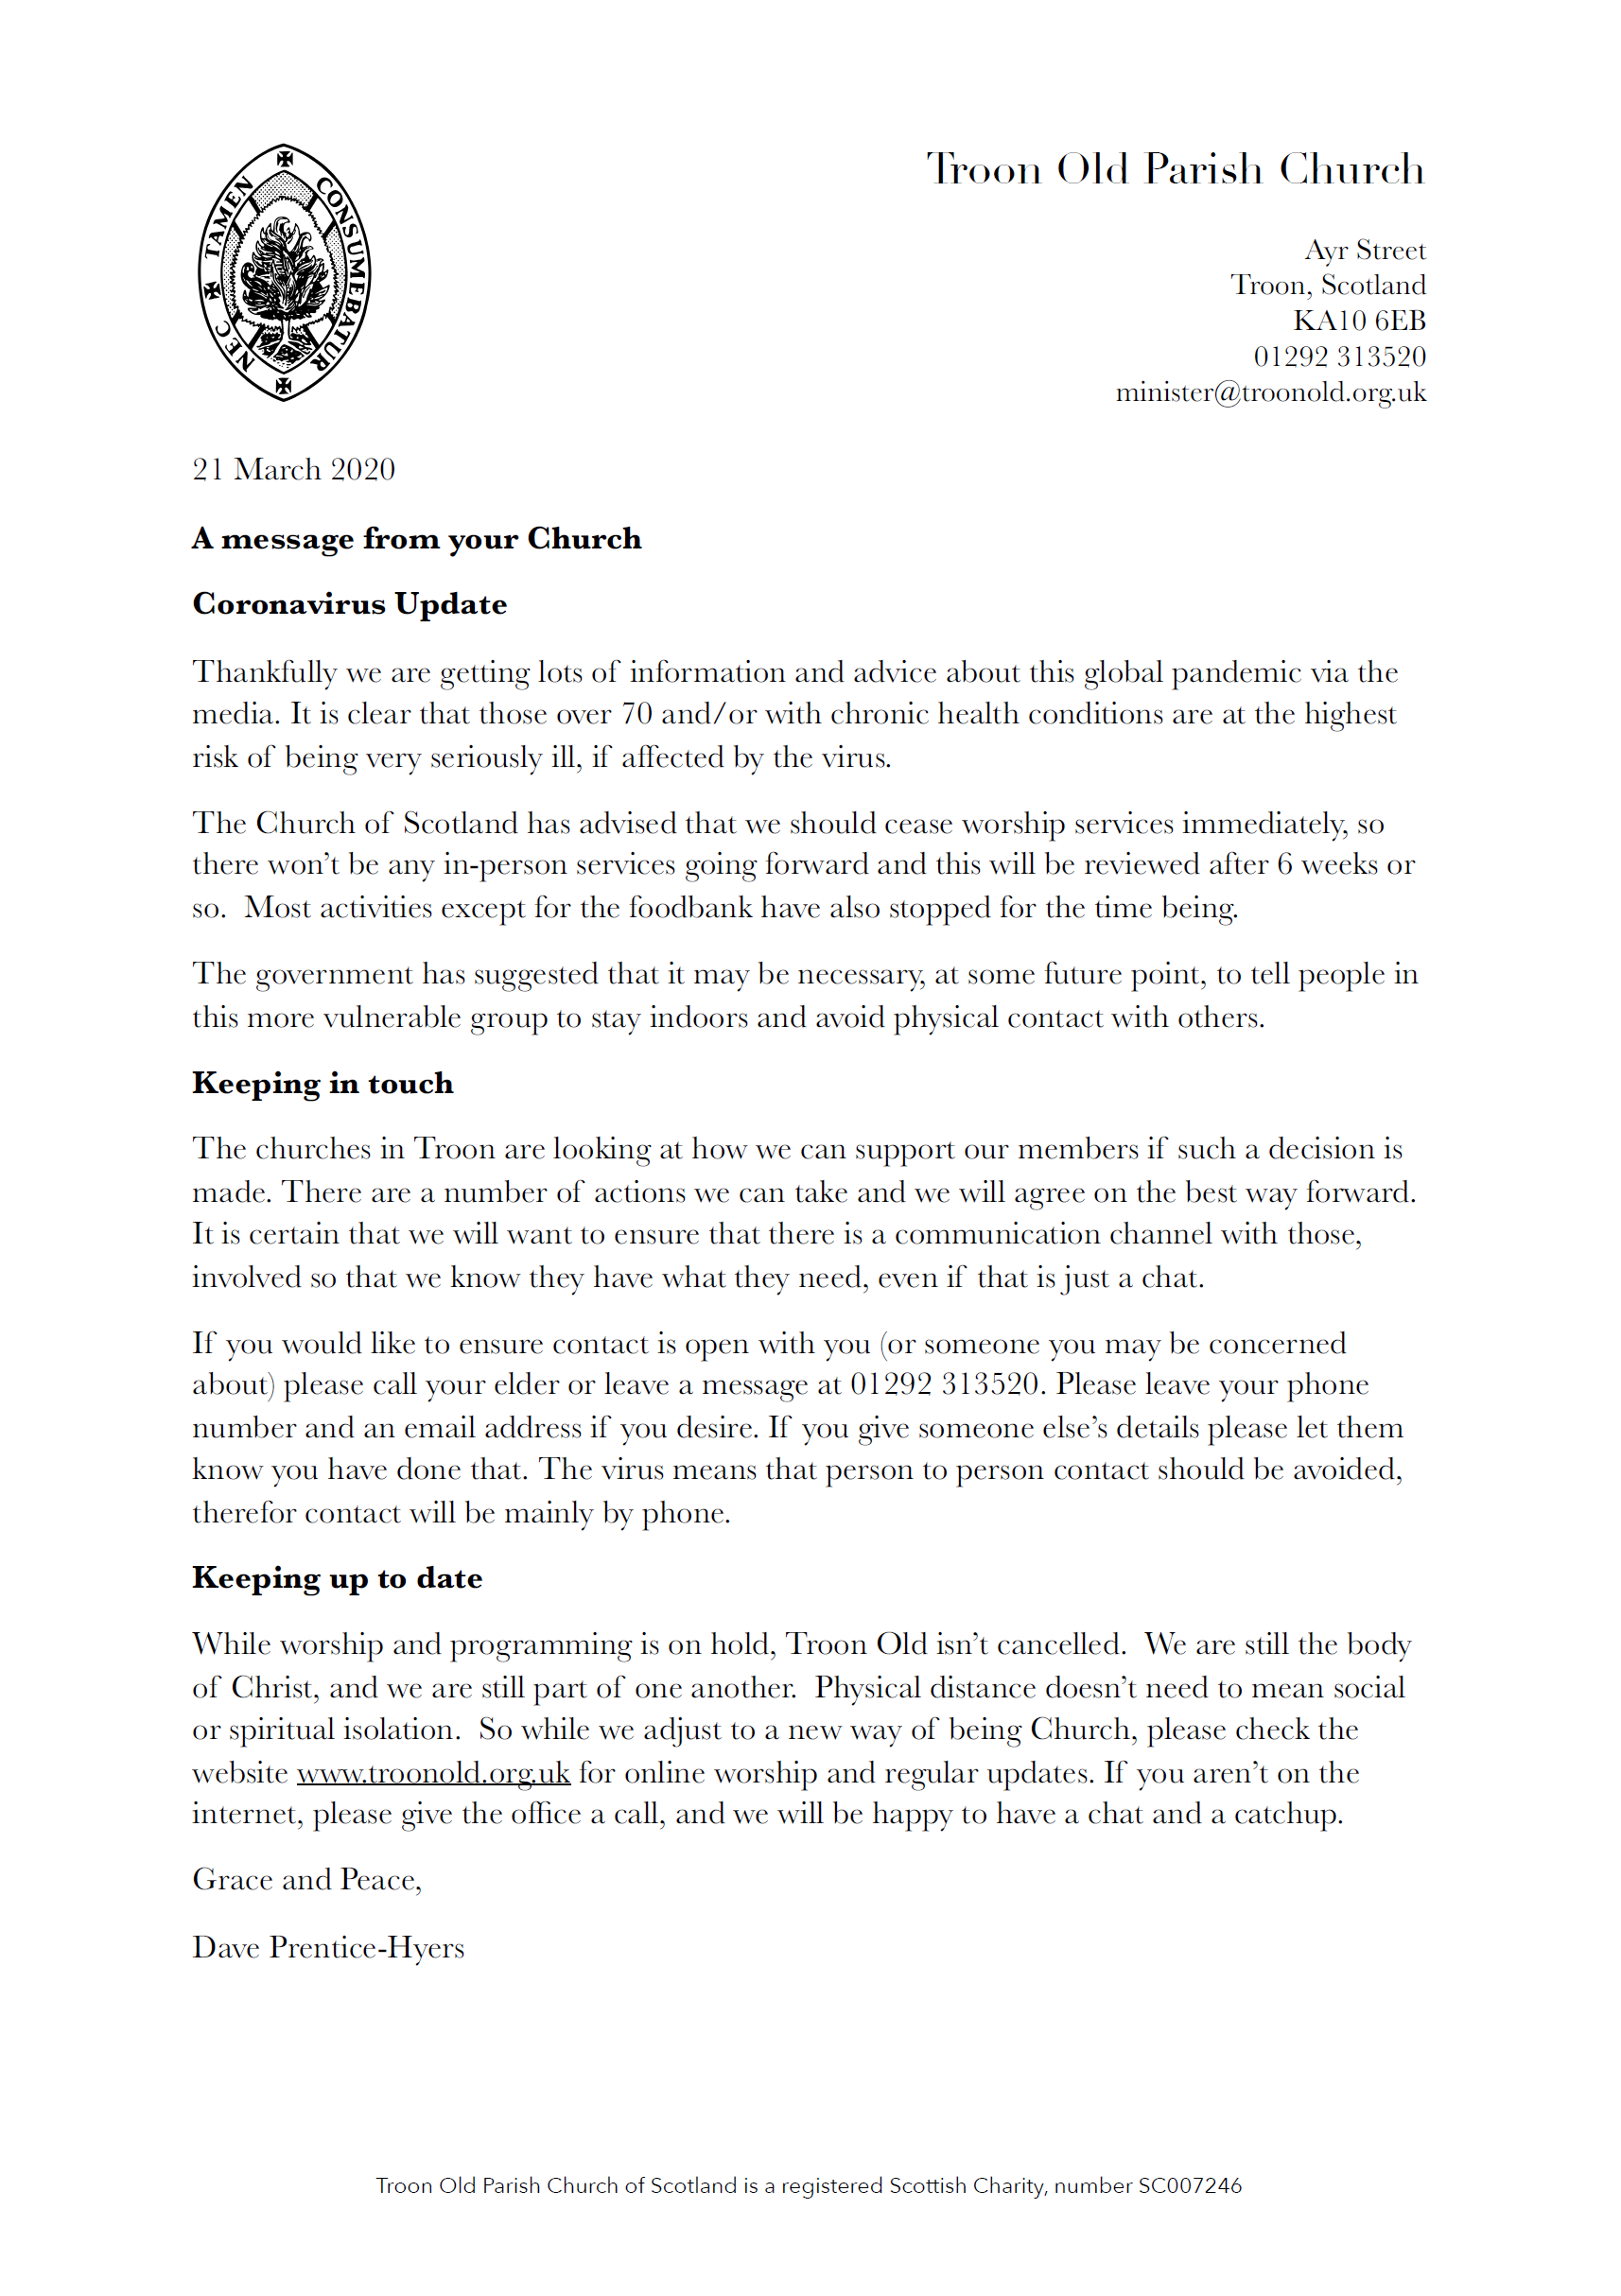 letter to TOPC congregation, 21 March 2020